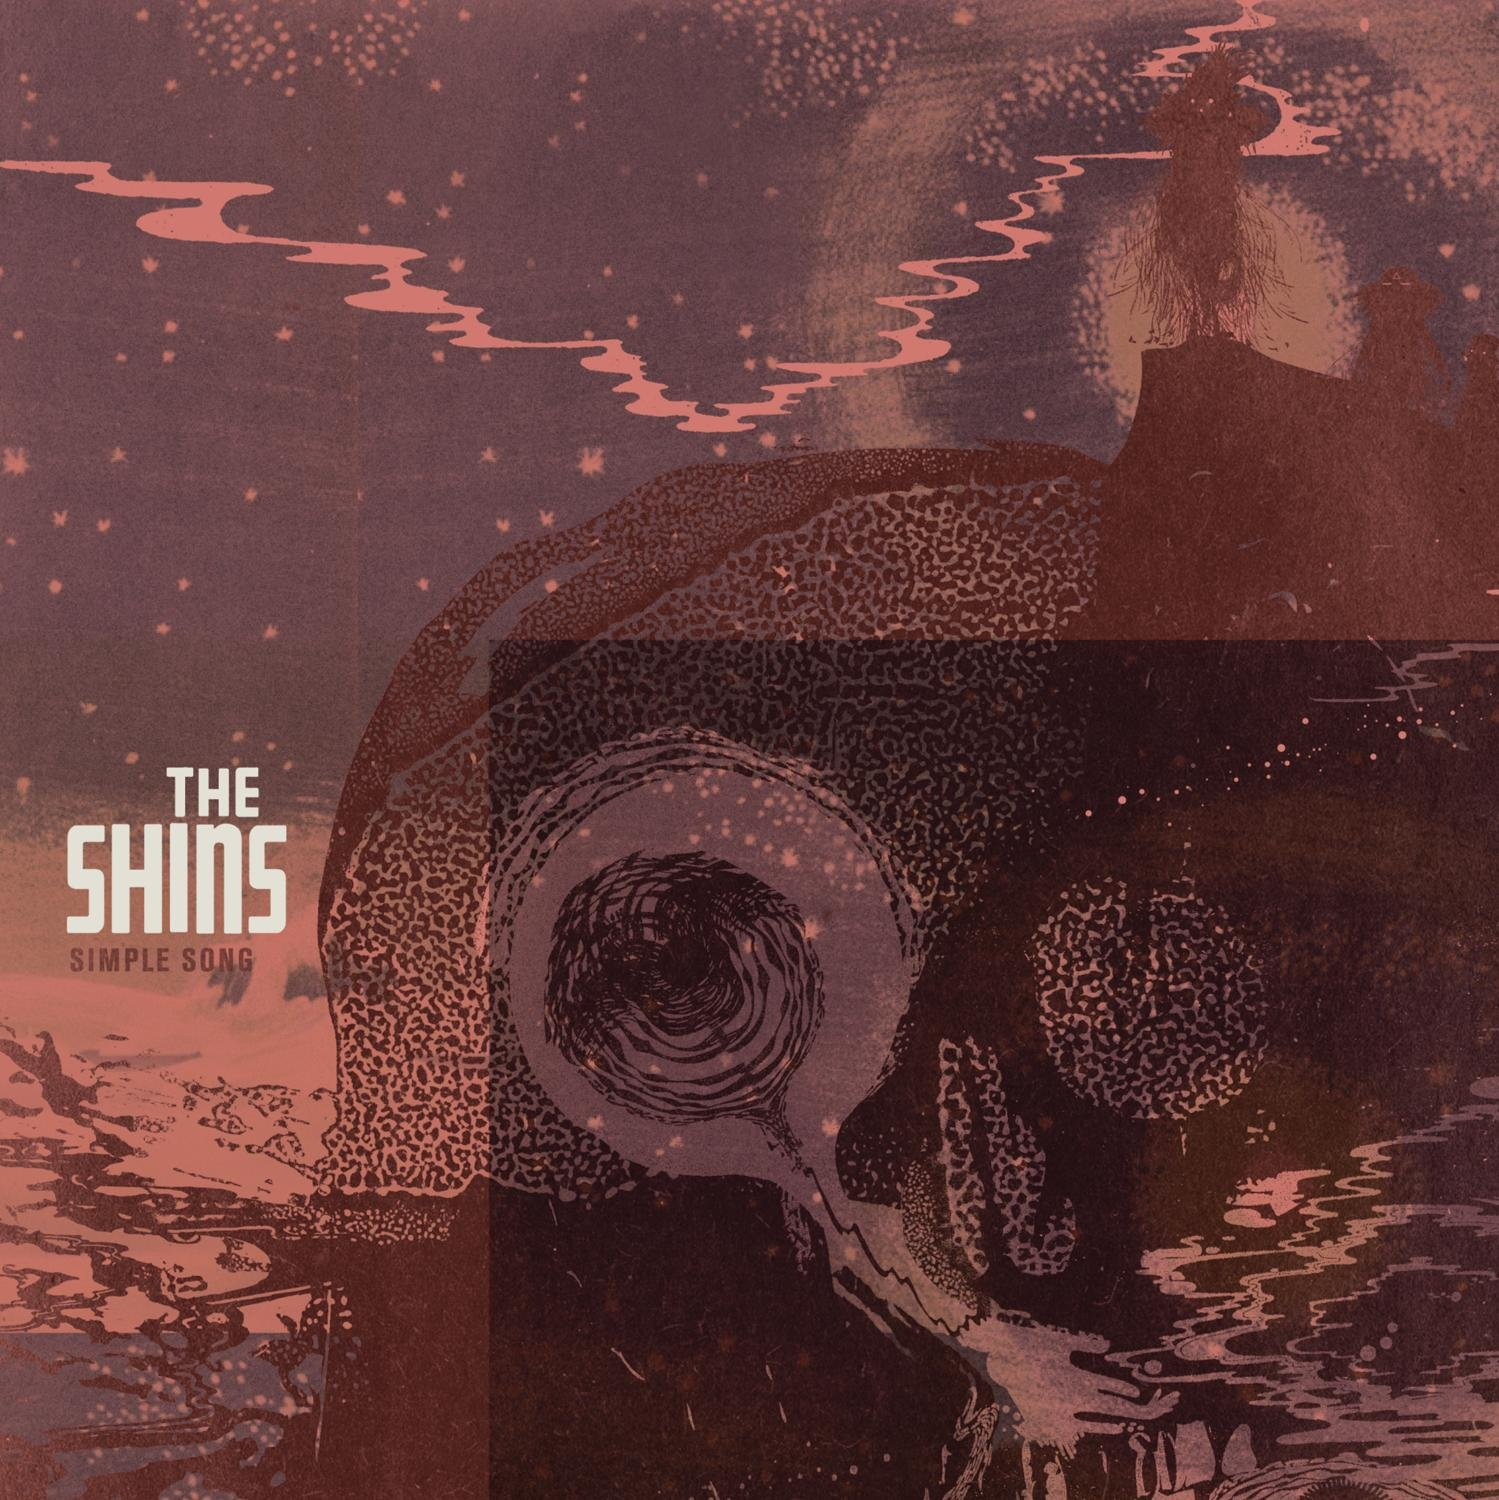 The Shins - Simple Song / September (7 Inch Single)